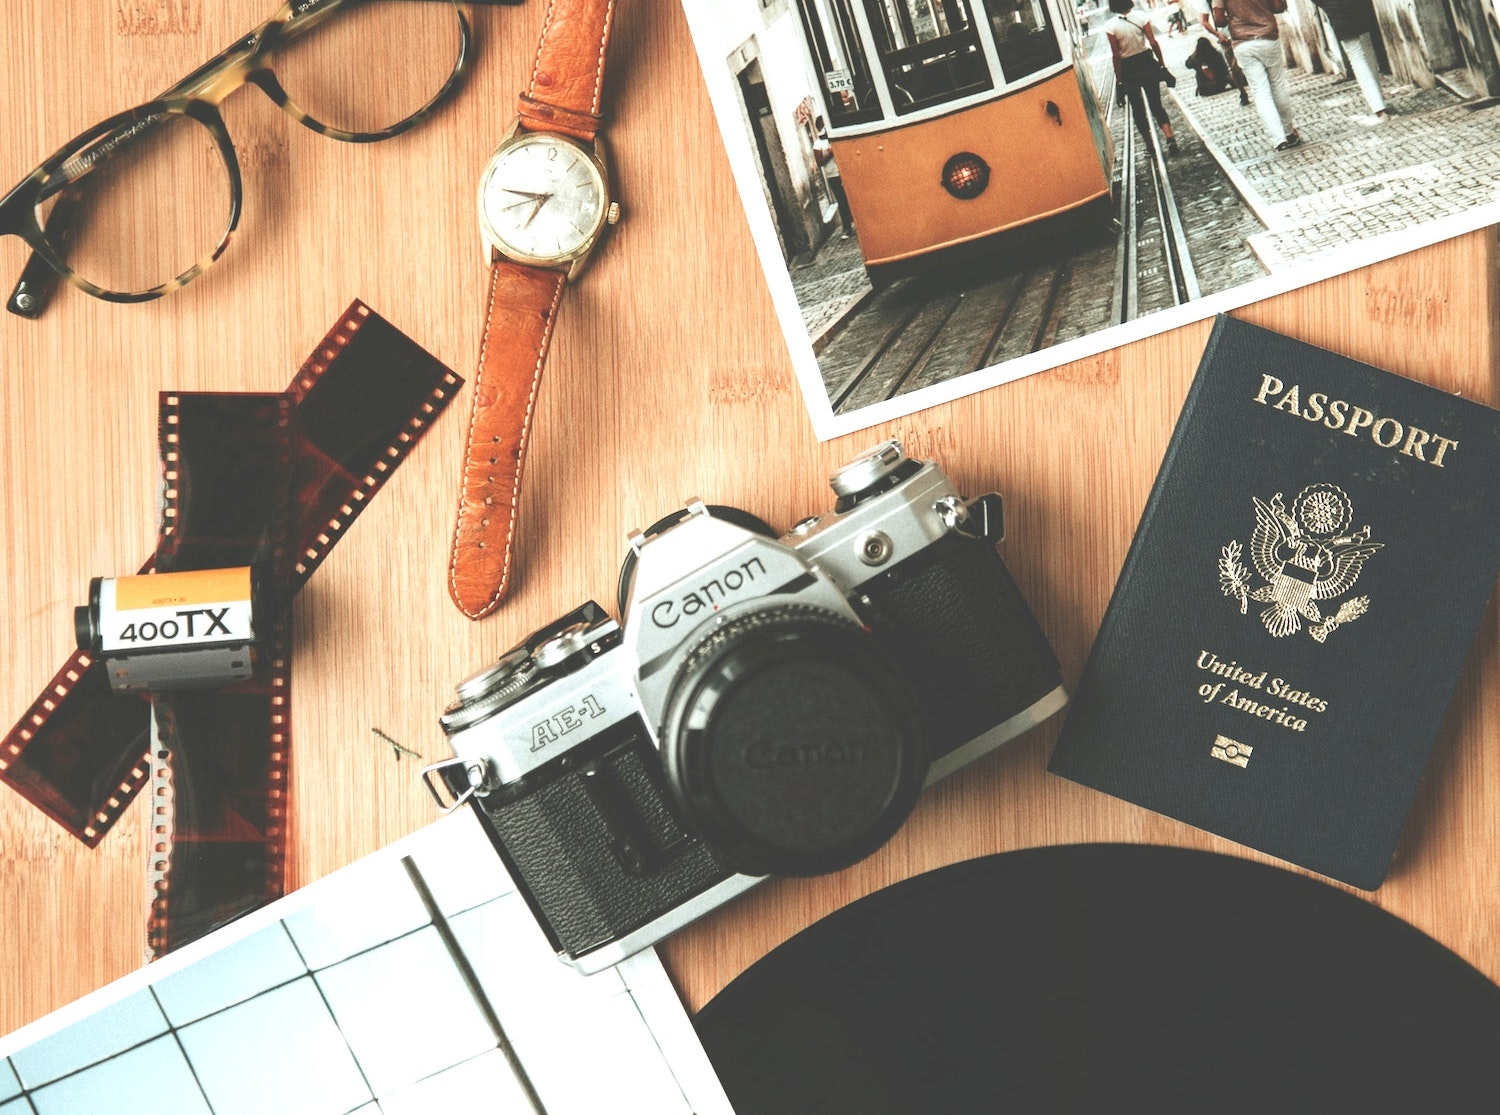 How to Become a Travel Agent - Cyndi Williams